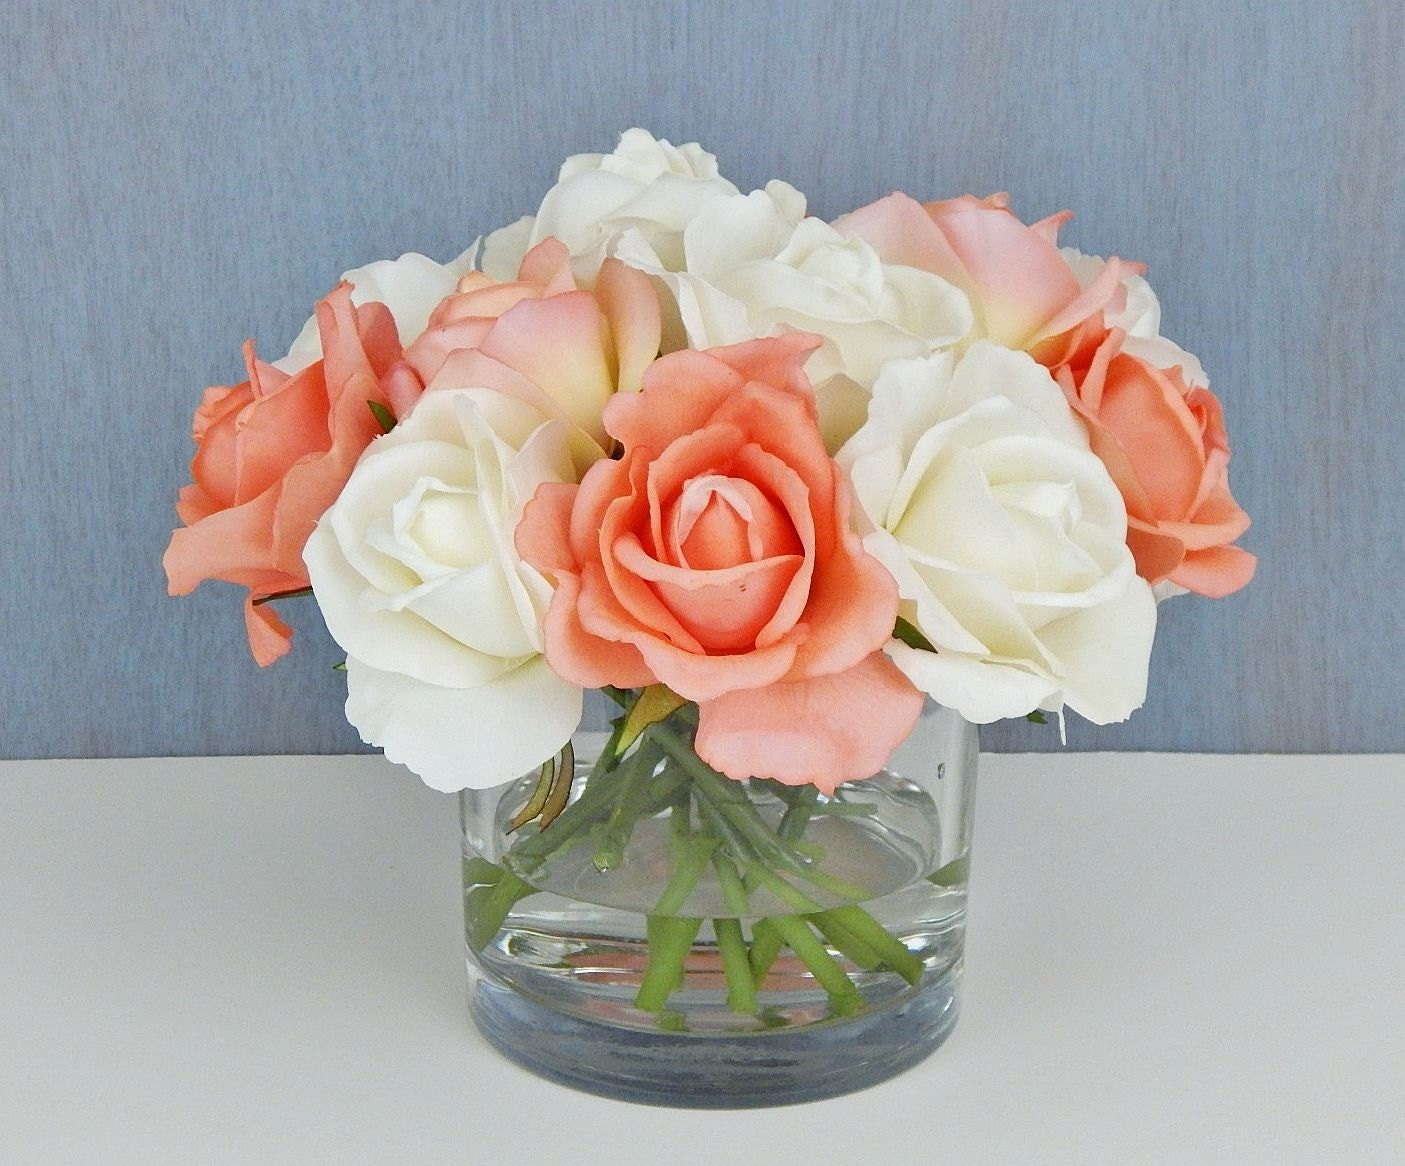 White coral orange roseroses faux water acrylicillusion white coral orange roseroses faux water acrylicillusion silk real touch flowers floral arrangement centerpiece gift glass vase reviewsmspy